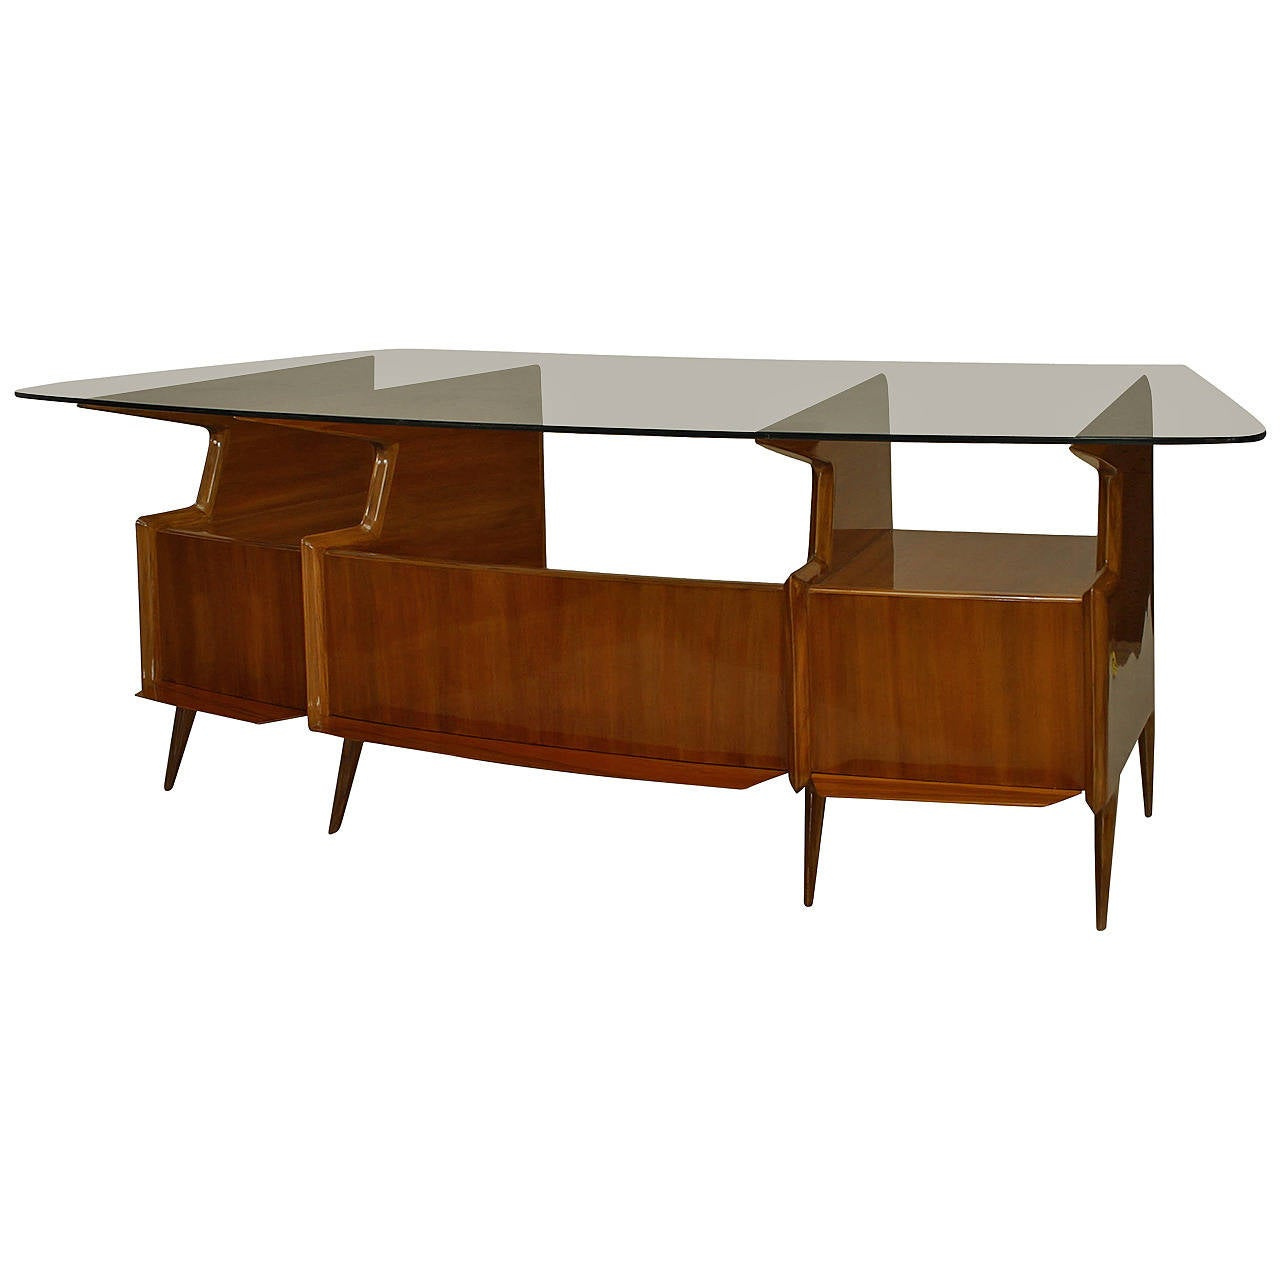 Midcentury Italian Bowed Glass Top Mahogany Desk By Gio Ponti For Sale At 1stdibs